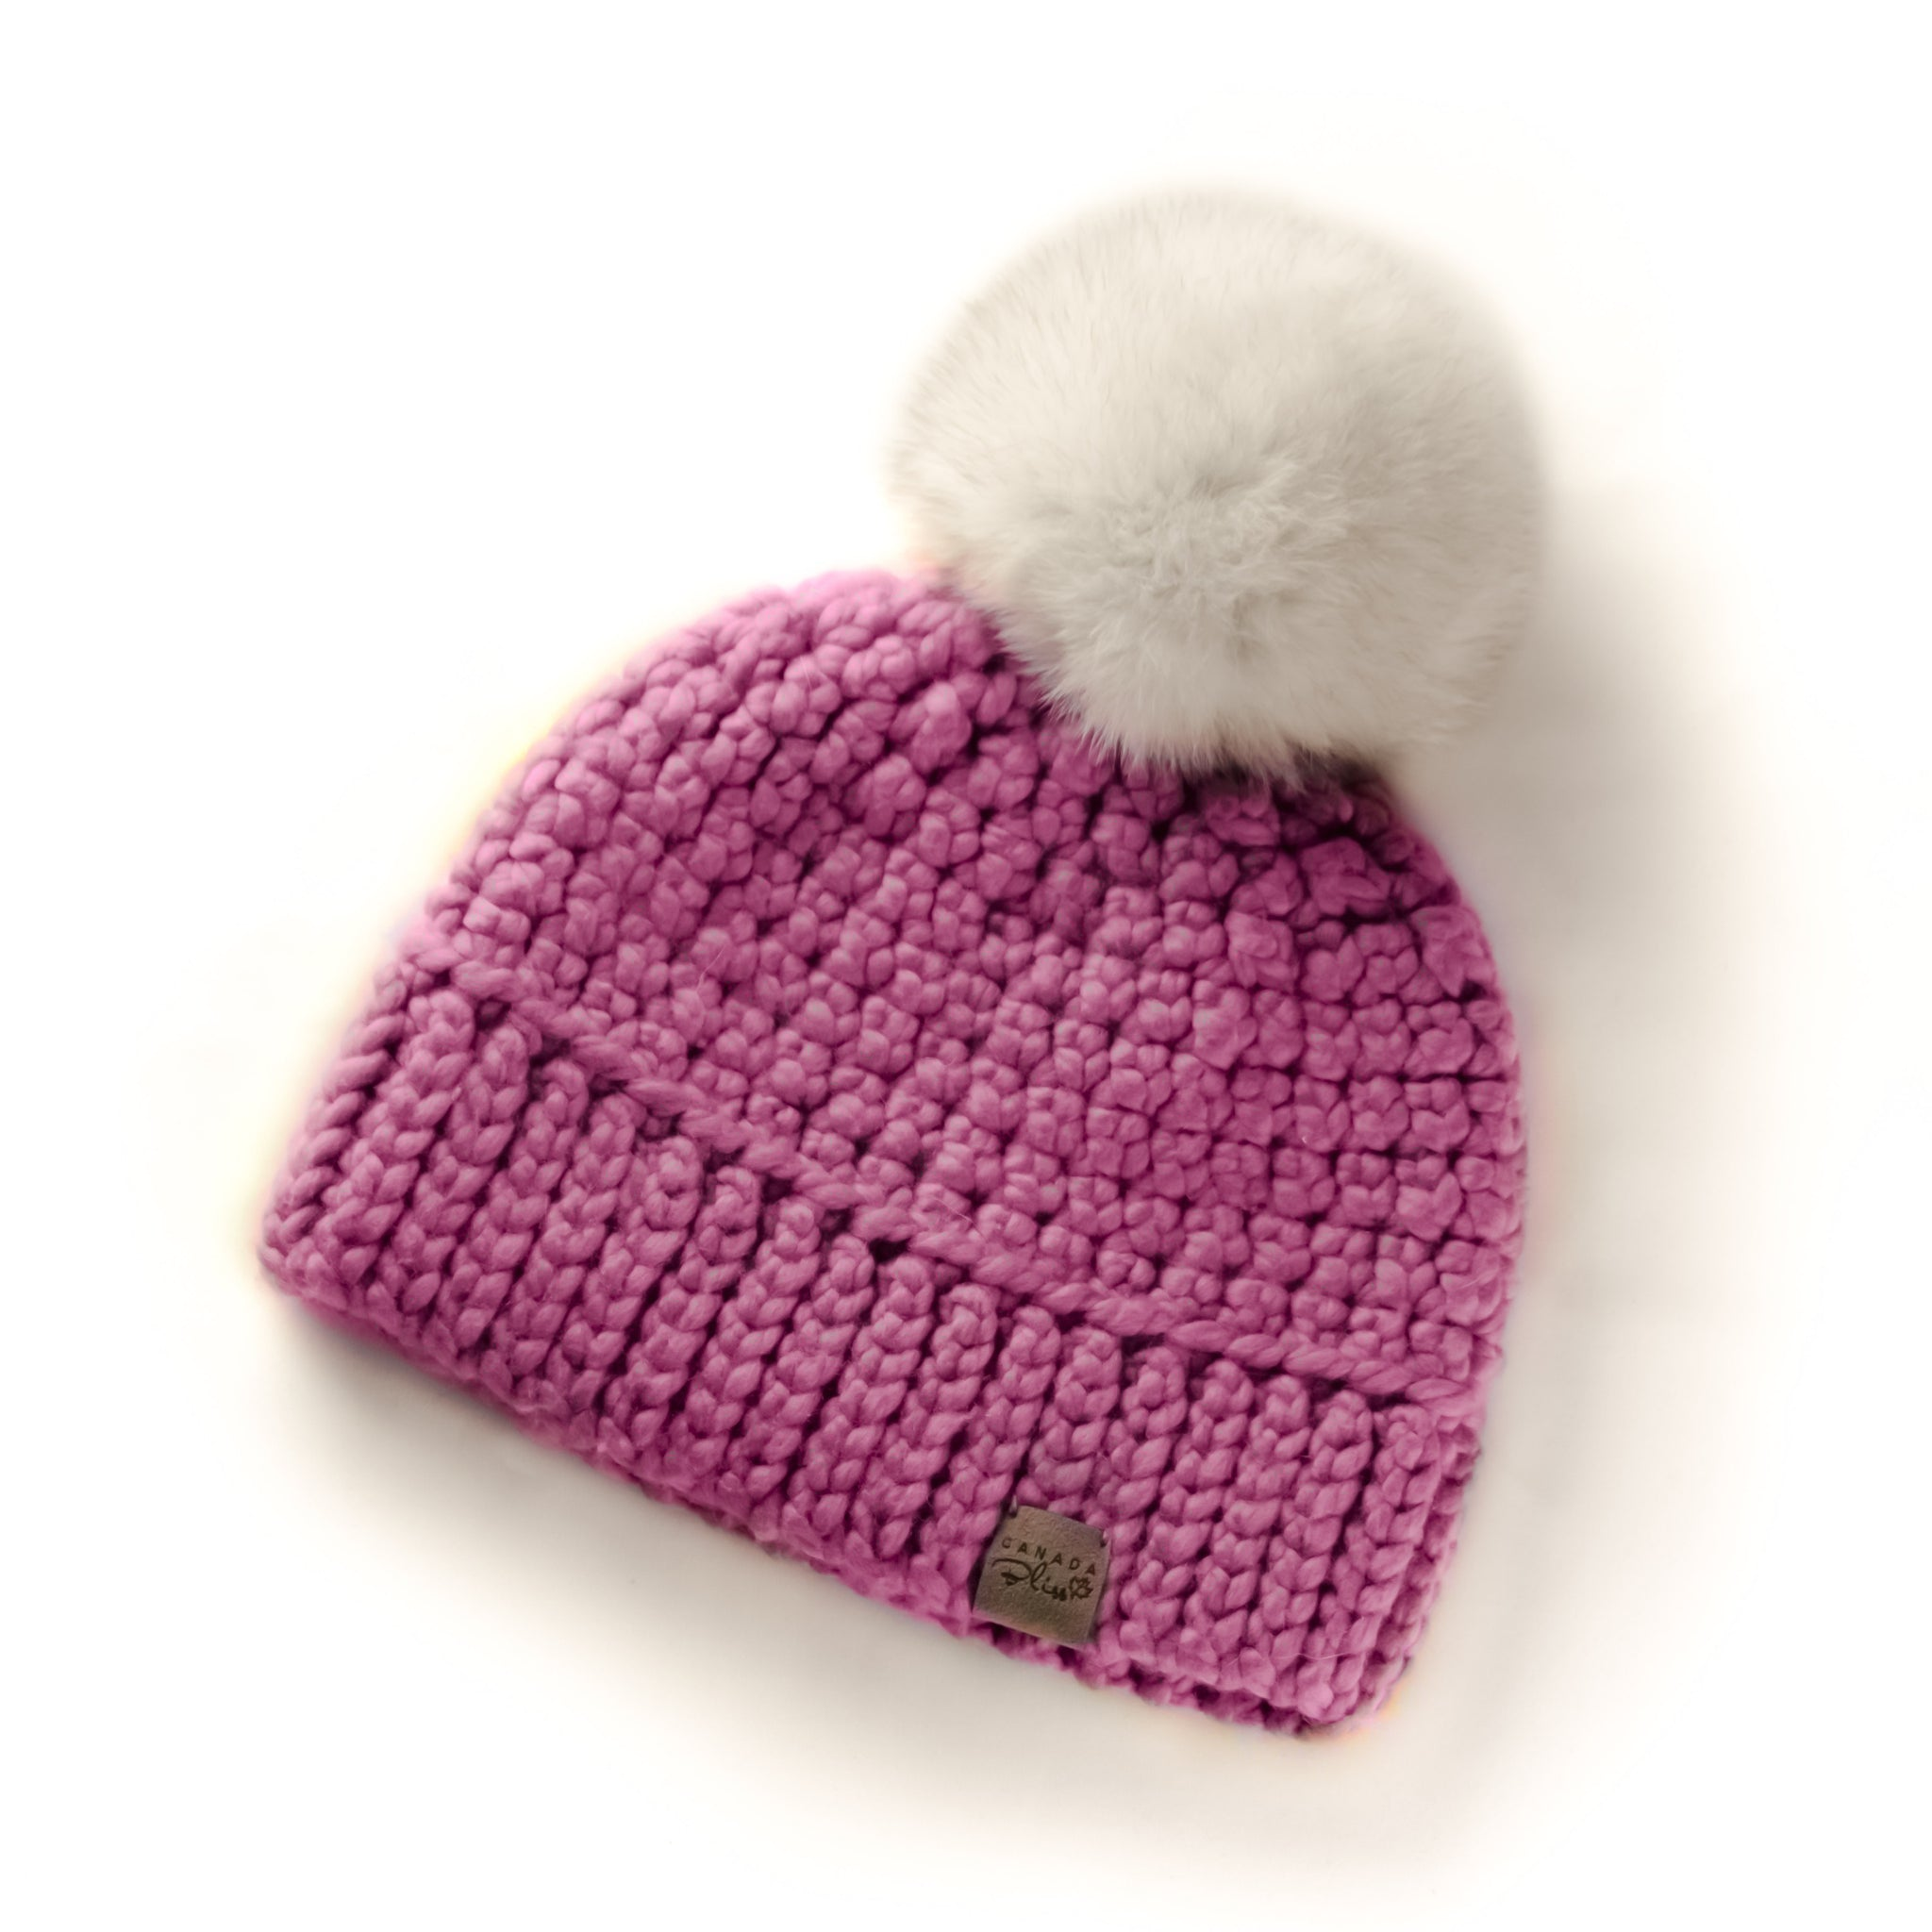 2b58646c0a5c5 Plum Signature Pom Pom Hat Merino Wool Crochet Knit Hat Canada Bliss Hot  Accessories Celebrity Fashion